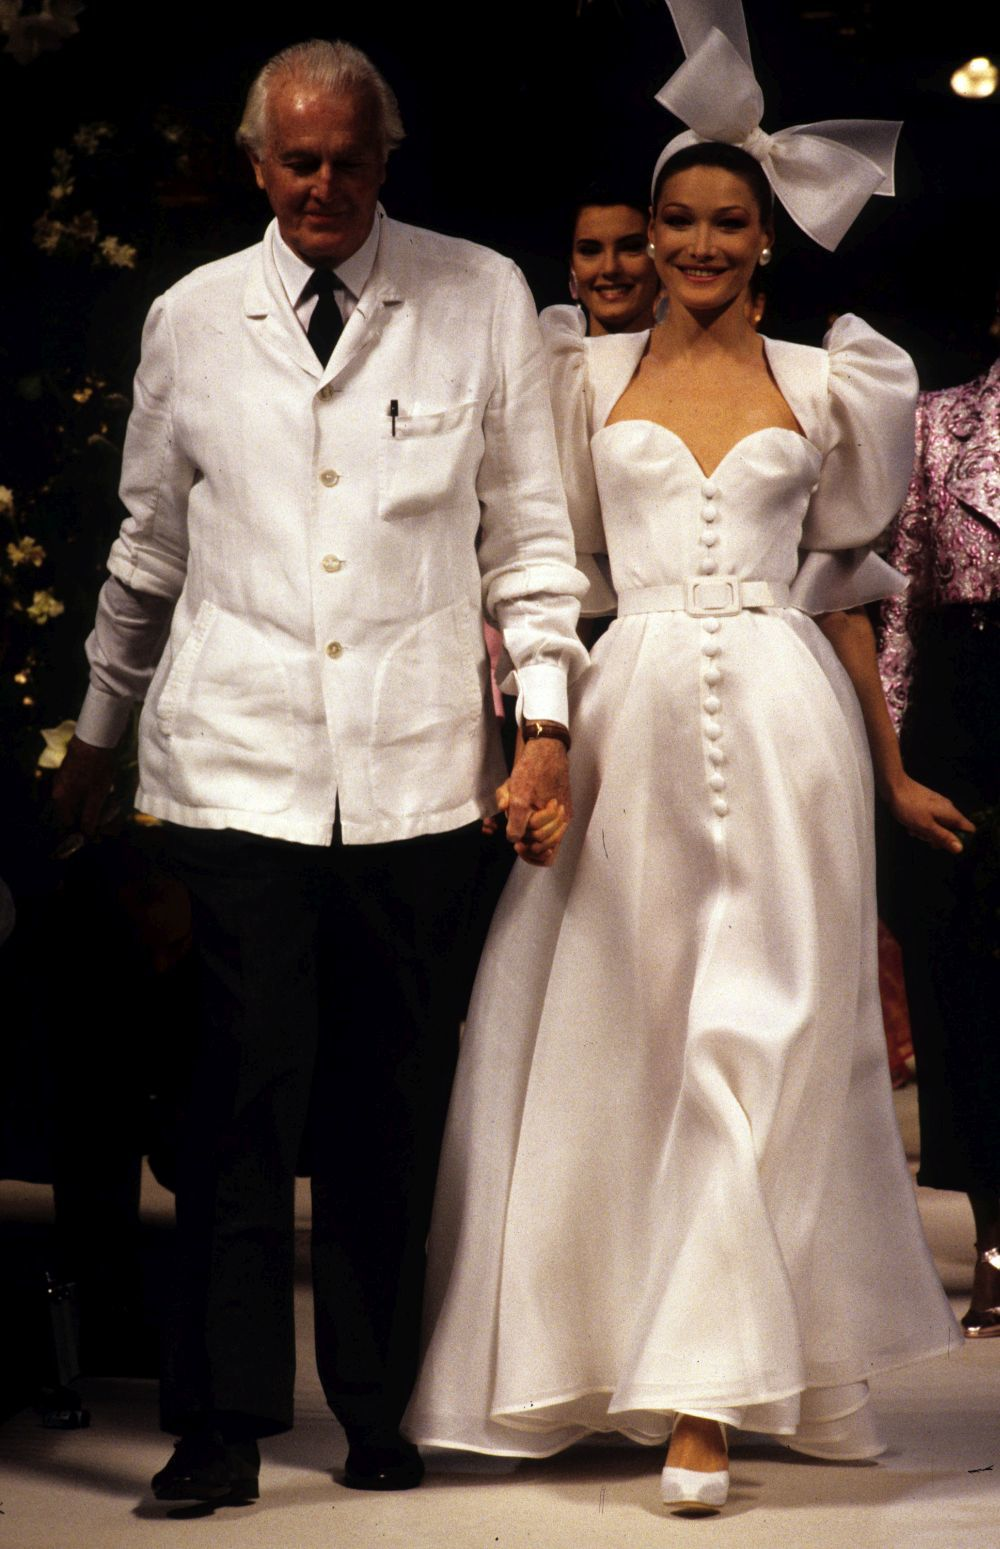 PARIS - (FILE) Model Carla Bruni walks the catwalk during Givenchy show High Fashion (circa 1993) in Paris, France. According to reports, December 18, 2007 French President Nicolas Sarkozy has asked the Italian model turned pop singer to marry him. (Photo by Michel Dufour/WireImage)